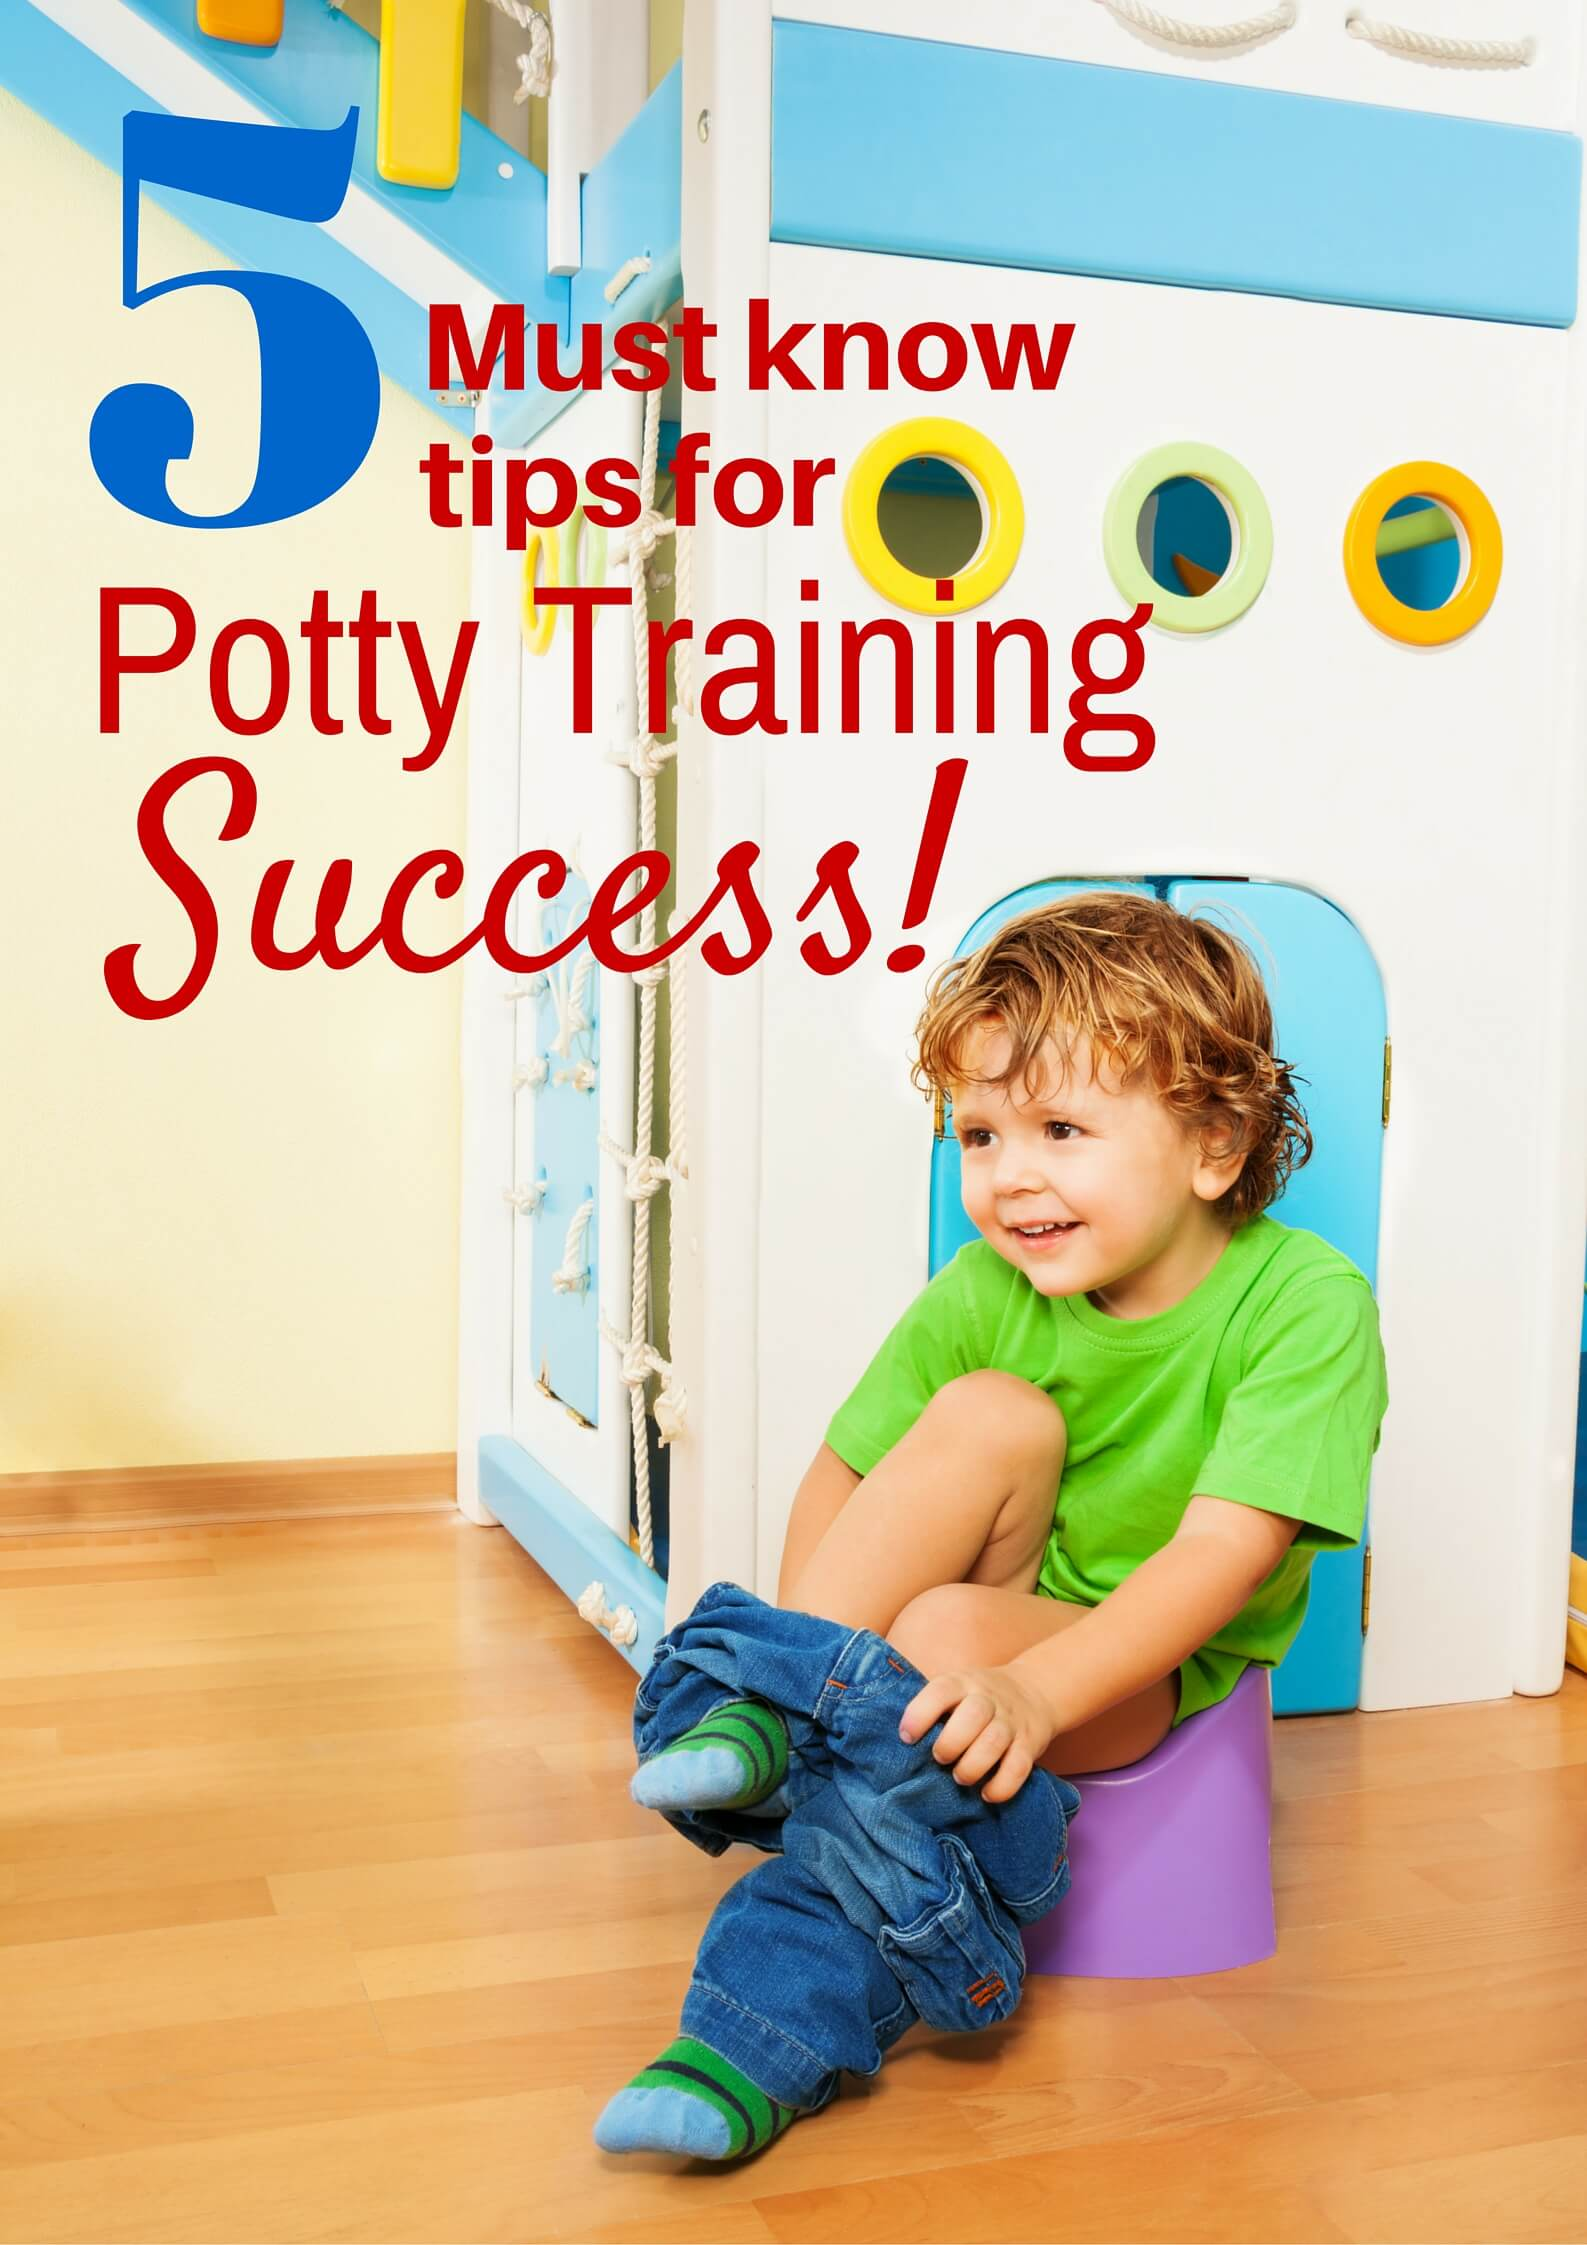 Potty Training Tips for Success